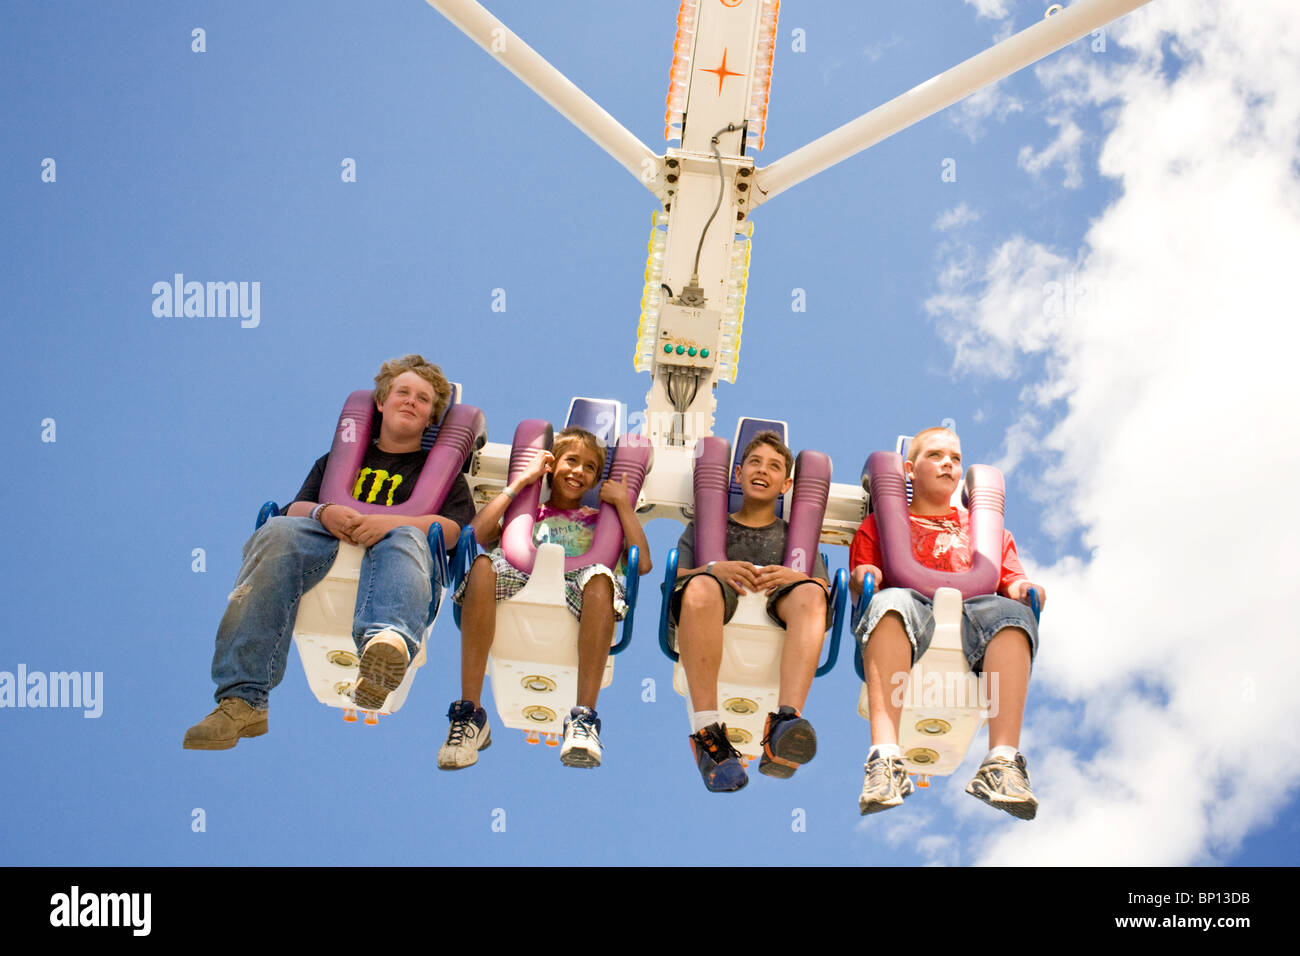 Four boys on a thrill ride at Cobleskill Sunshine Fair, New York State - Stock Image